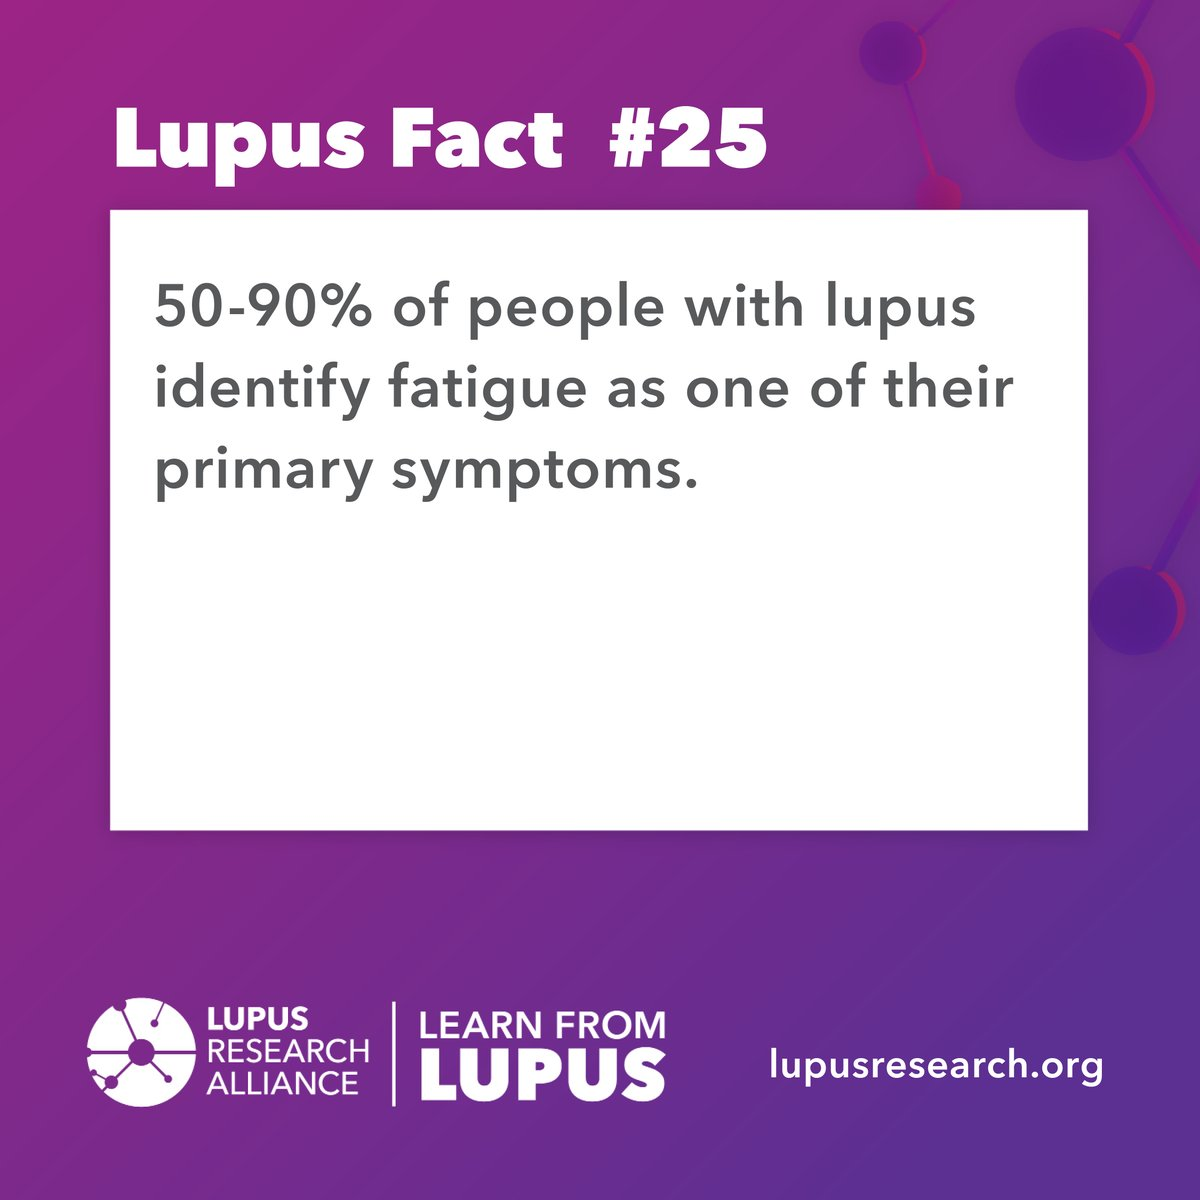 #Didyouknow that fatigue can significantly impact patients' quality of life, including lessening the ability to function at home and at work.   Visit our website to learn more about lupus symptoms at: